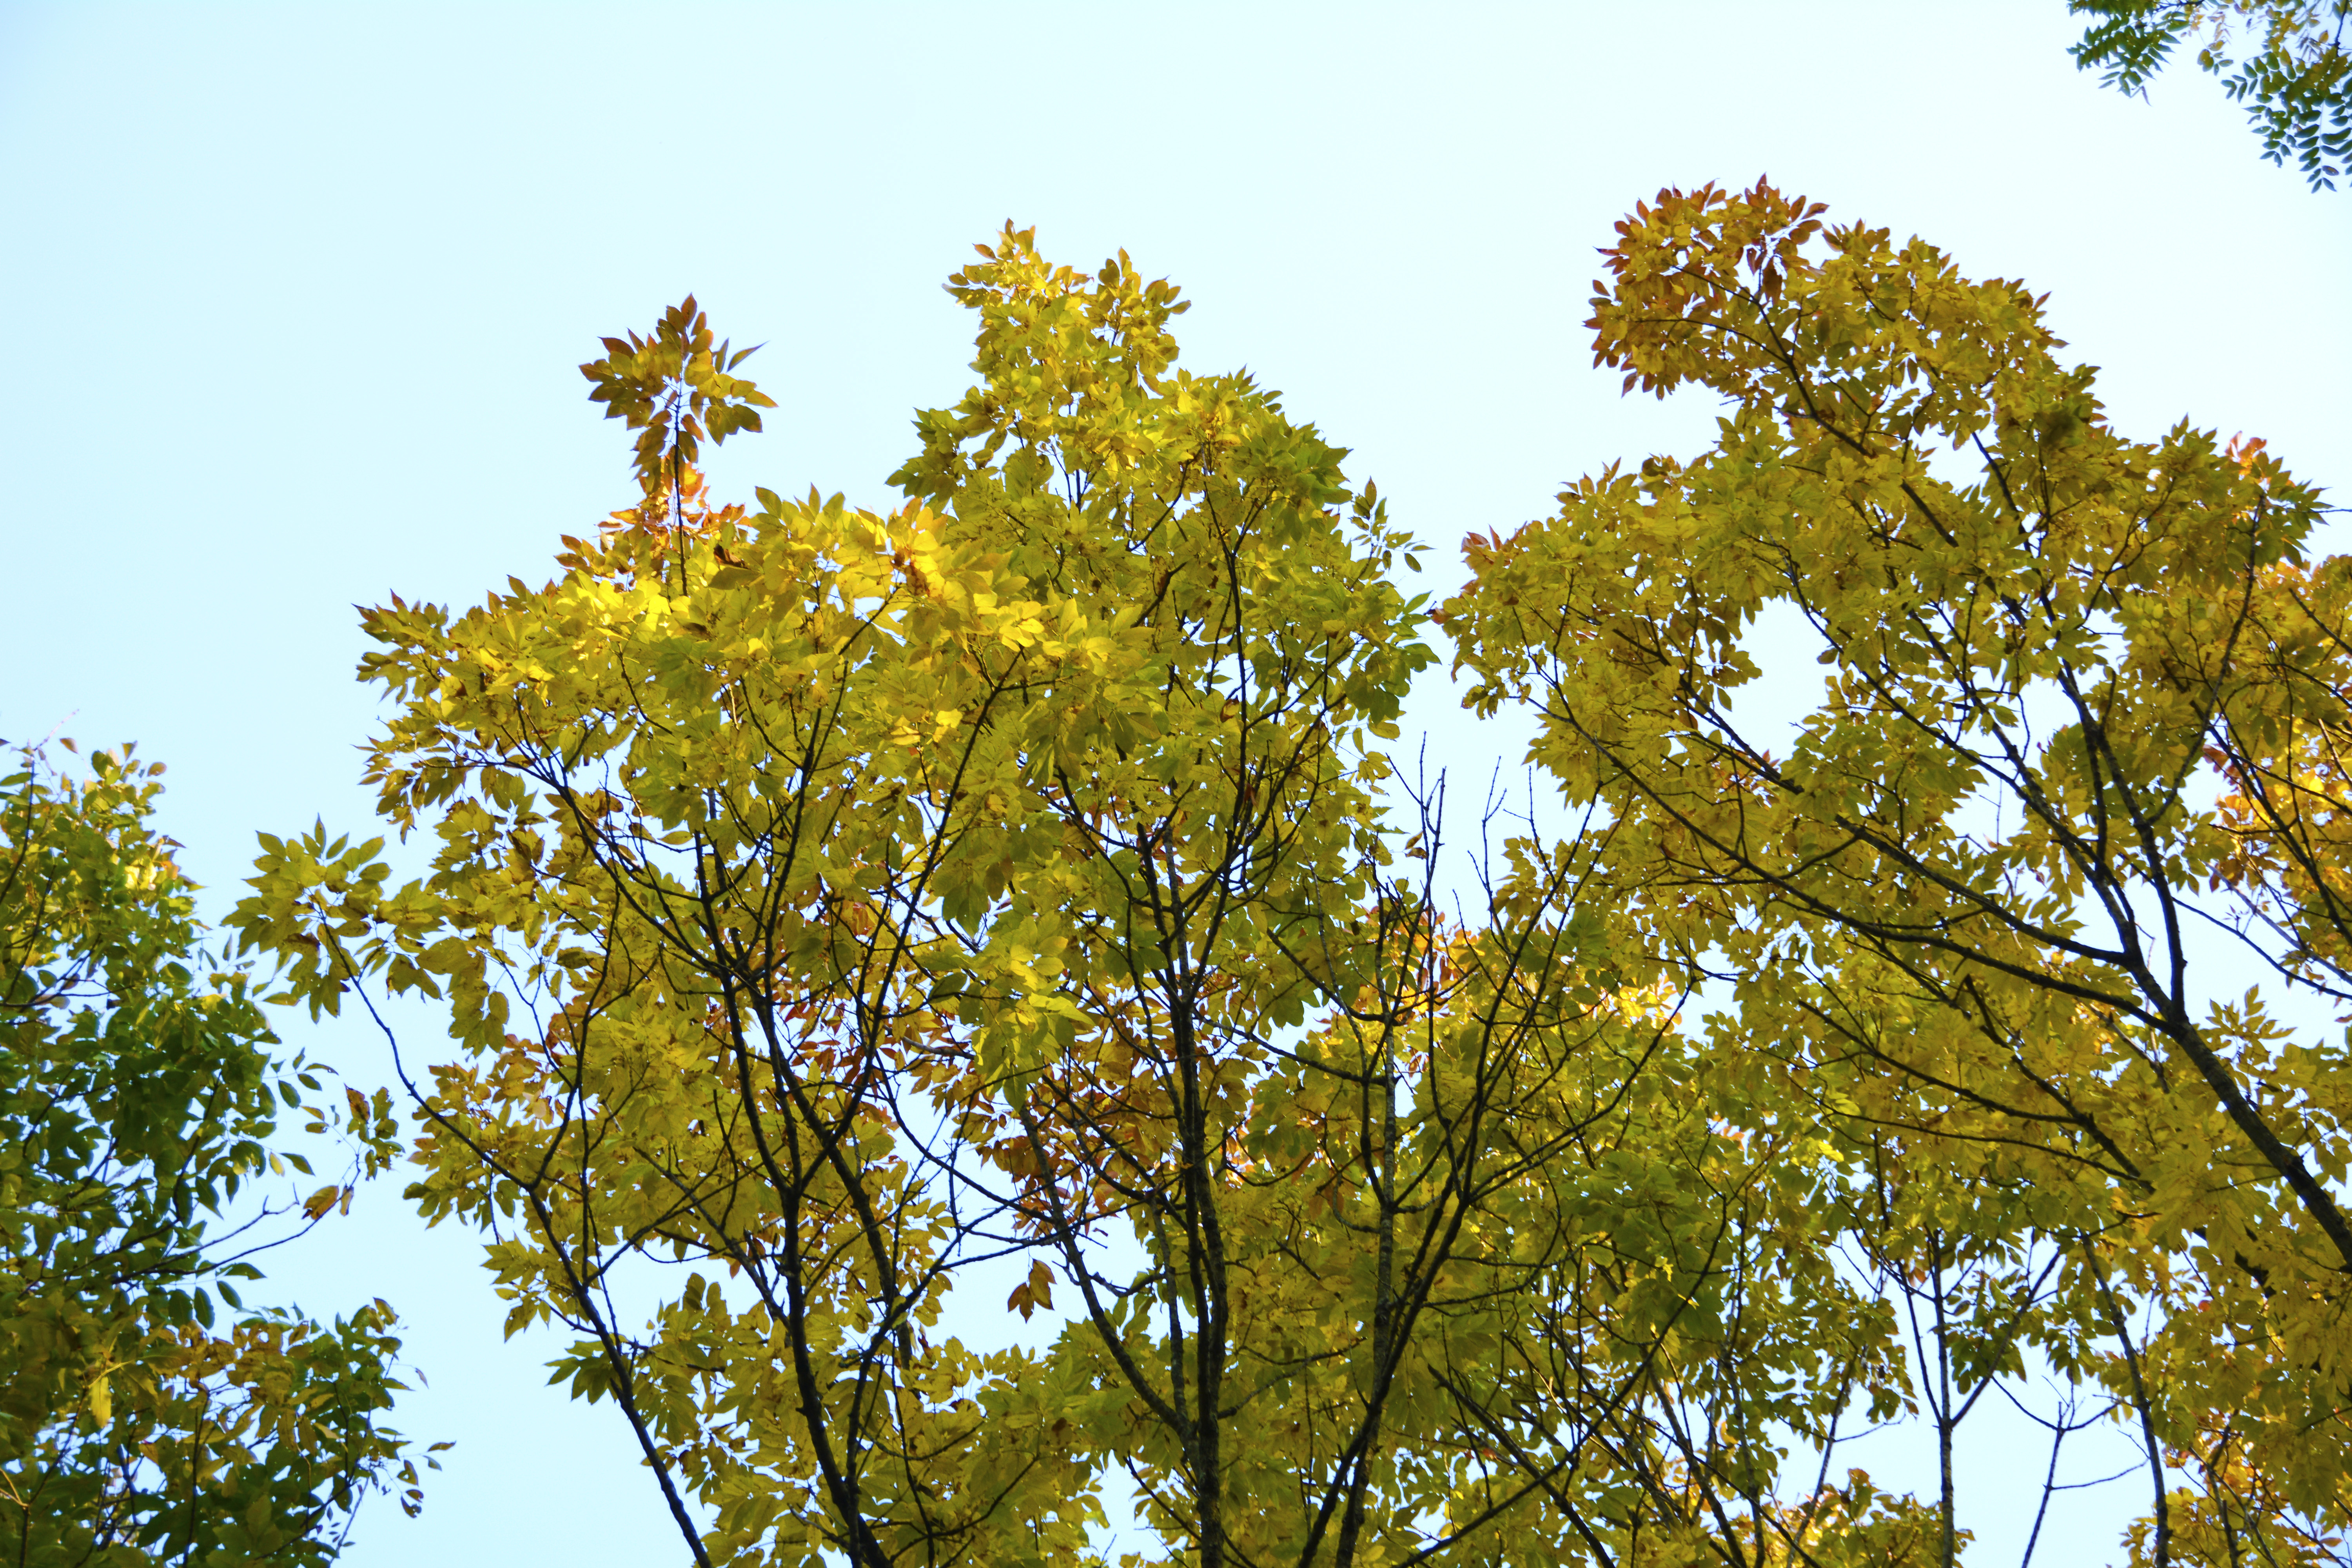 Ash trees wear fall color well